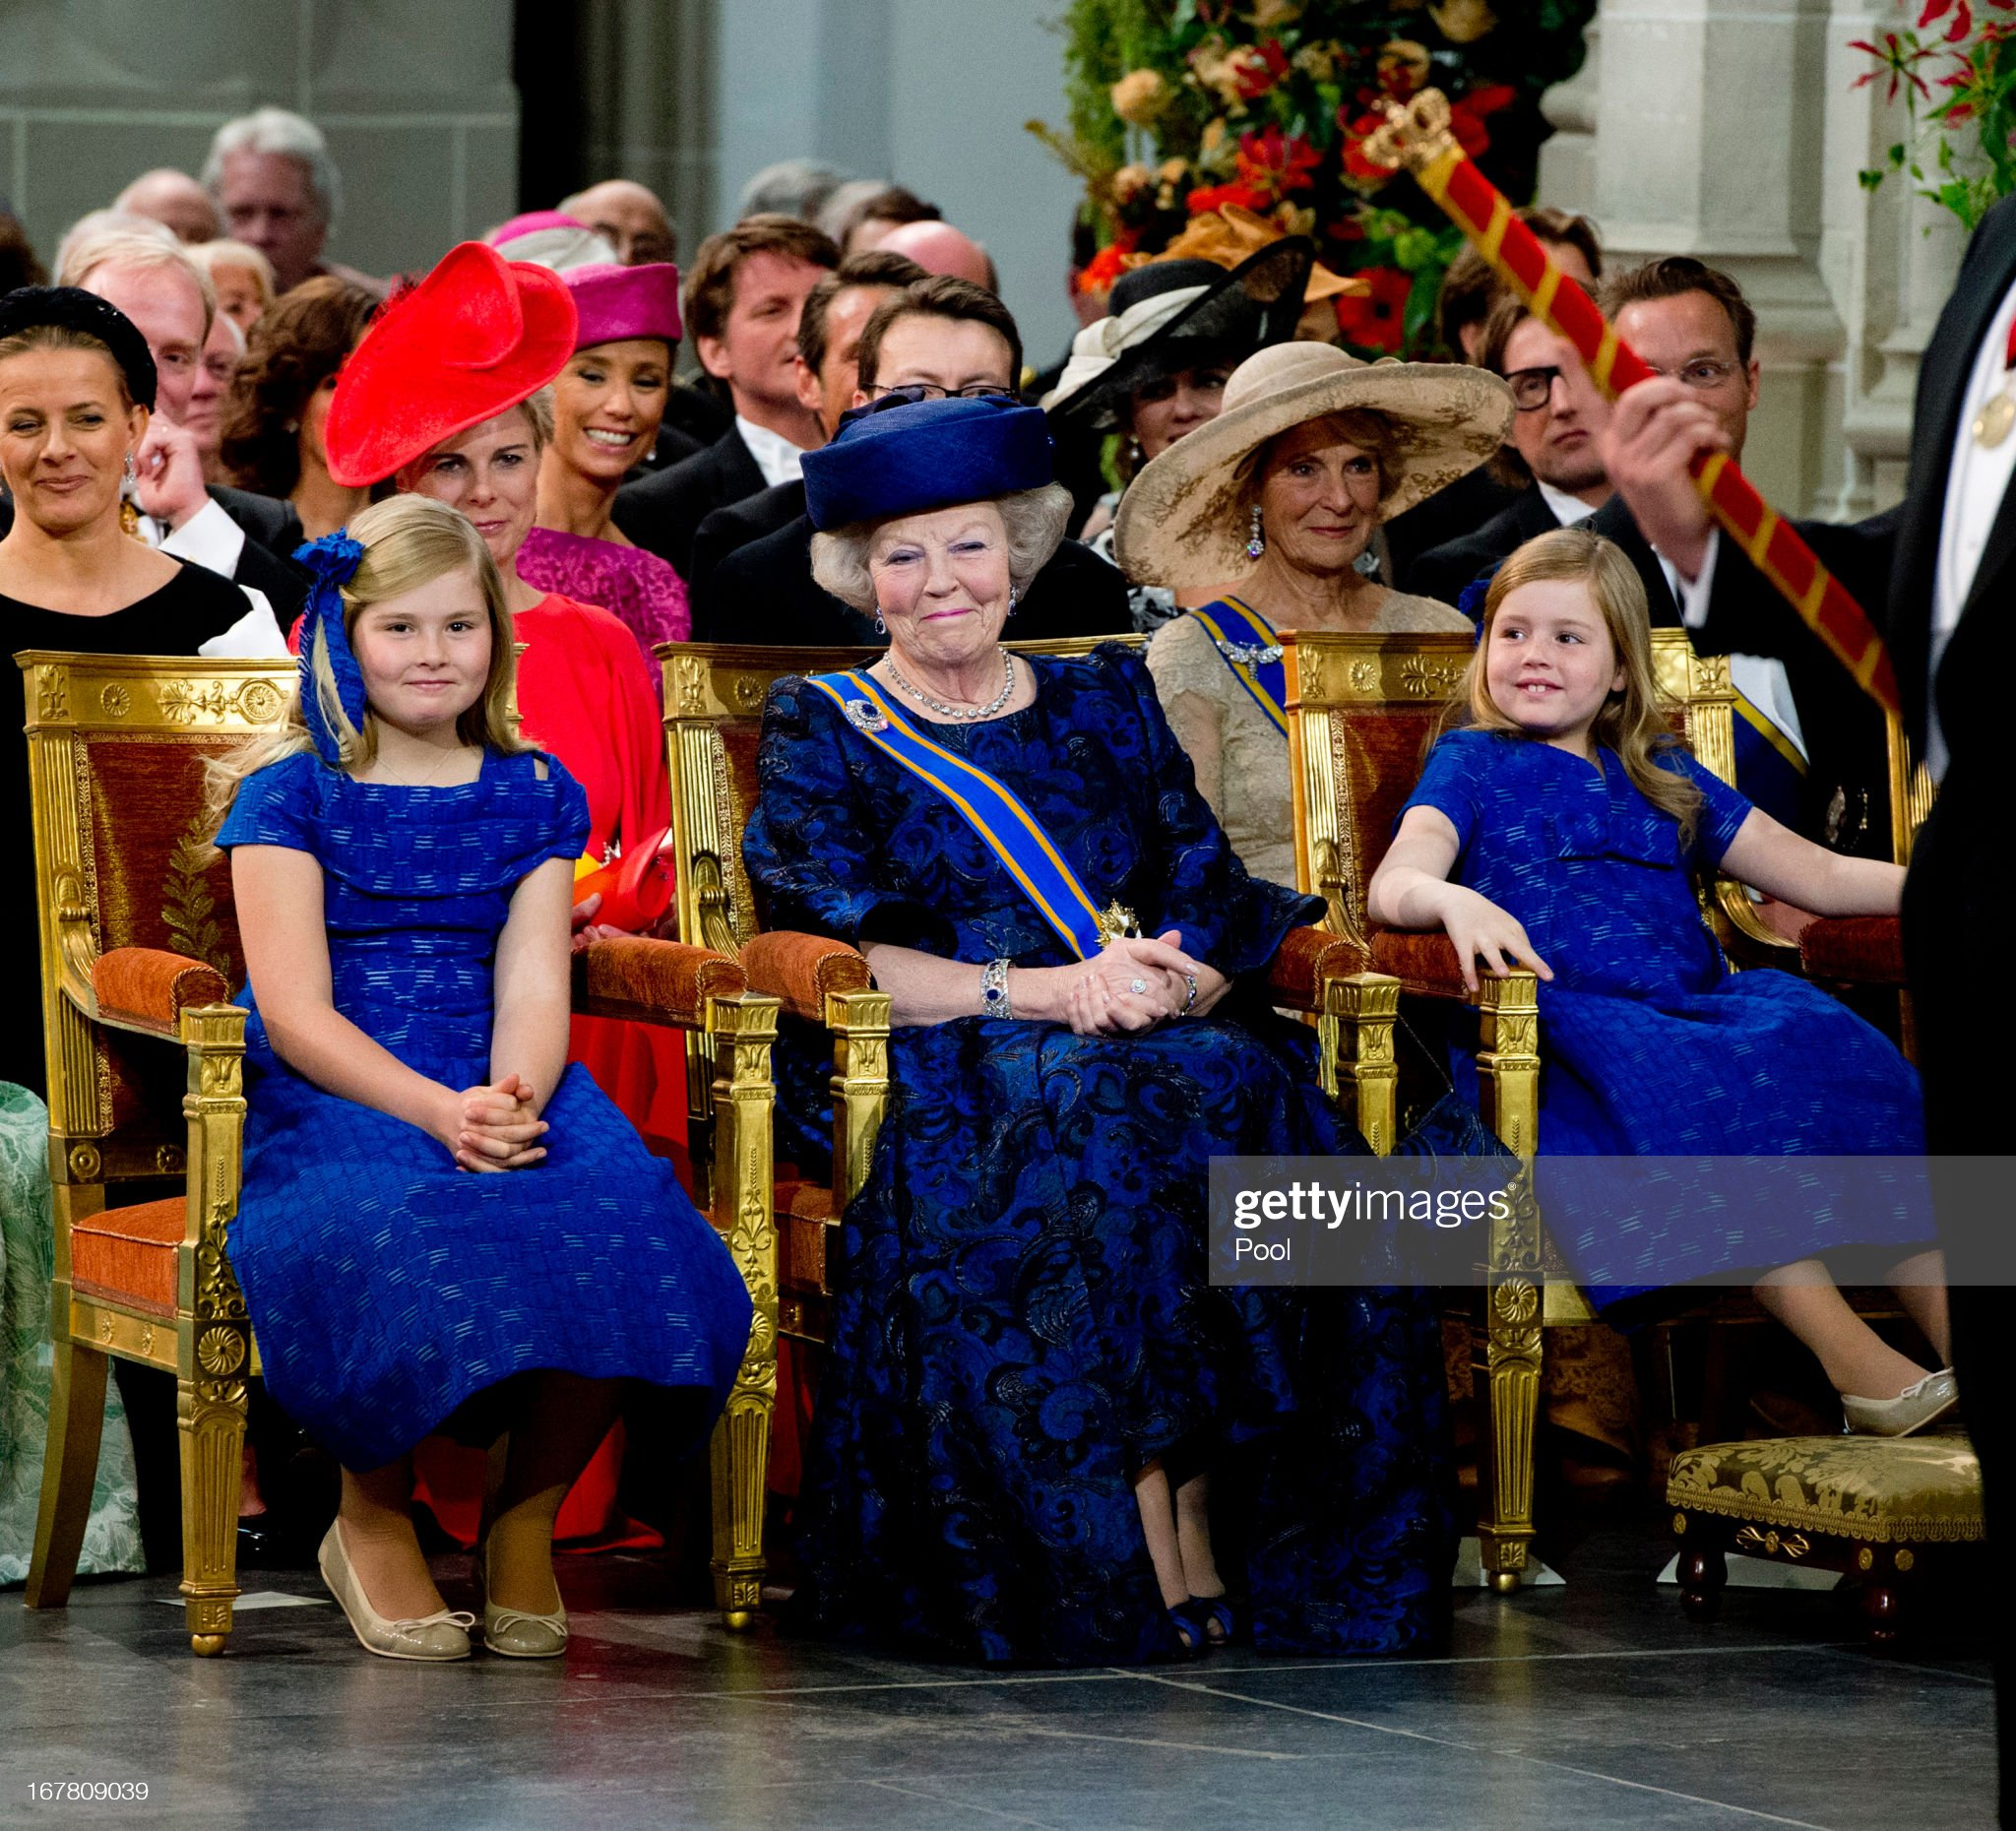 Inauguration Of King Willem Alexander As HRH Queen Beatrix Of The Netherlands Abdicates : News Photo